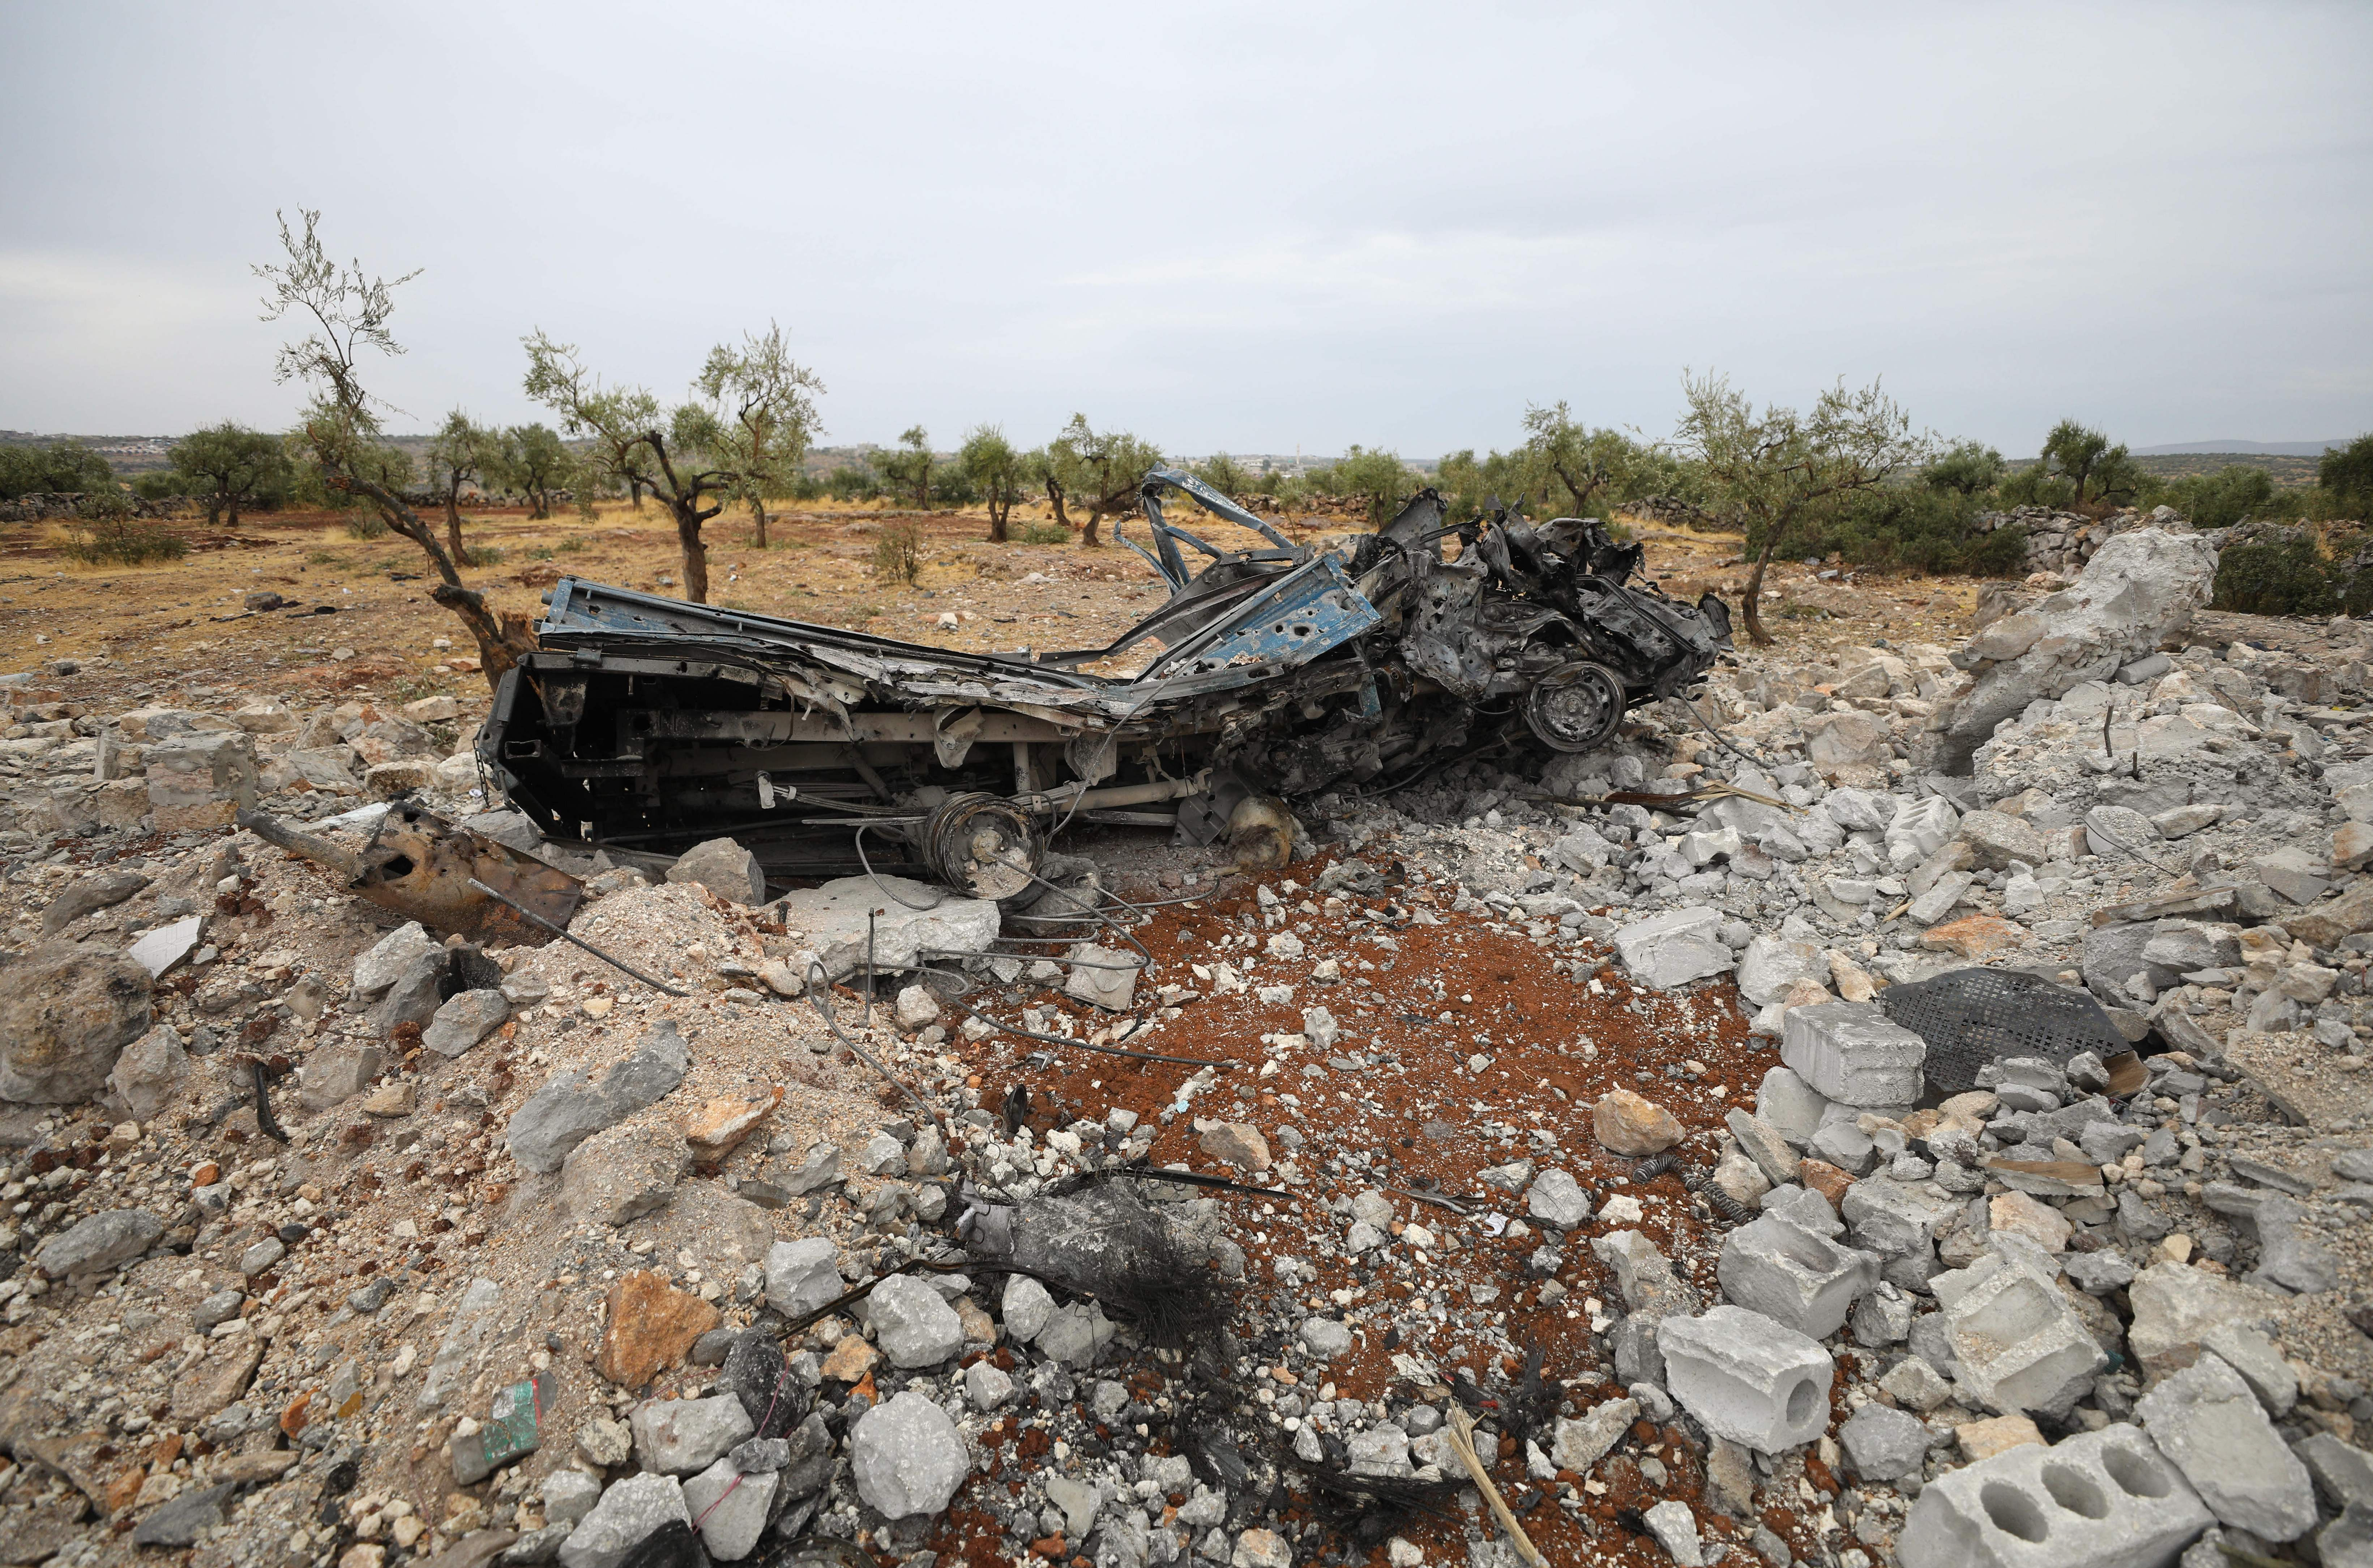 A picture taken on October 28, 2019 shows a vehicle wreck amid the rubble at the site of a suspected US-led operation against Islamic State (IS) chief Abu Bakr al-Baghdadi the previous day, on the edge of the small Syrian village of Barisha in the country's opposition-held northwestern Idlib province. - US President Donald Trump announced that Baghdadi, the elusive leader of the jihadist group and the world's most wanted man, was killed in the early hours of Octobe 27 in an overnight US raid near the village, located less than five kilometres from Turkey and controlled by the dominant jihadist group Hayat Tahrir al-Sham, an organisation that includes former operatives from Al-Qaeda's Syria affiliate. (Photo by Omar HAJ KADOUR / AFP) (Photo by OMAR HAJ KADOUR/AFP via Getty Images)